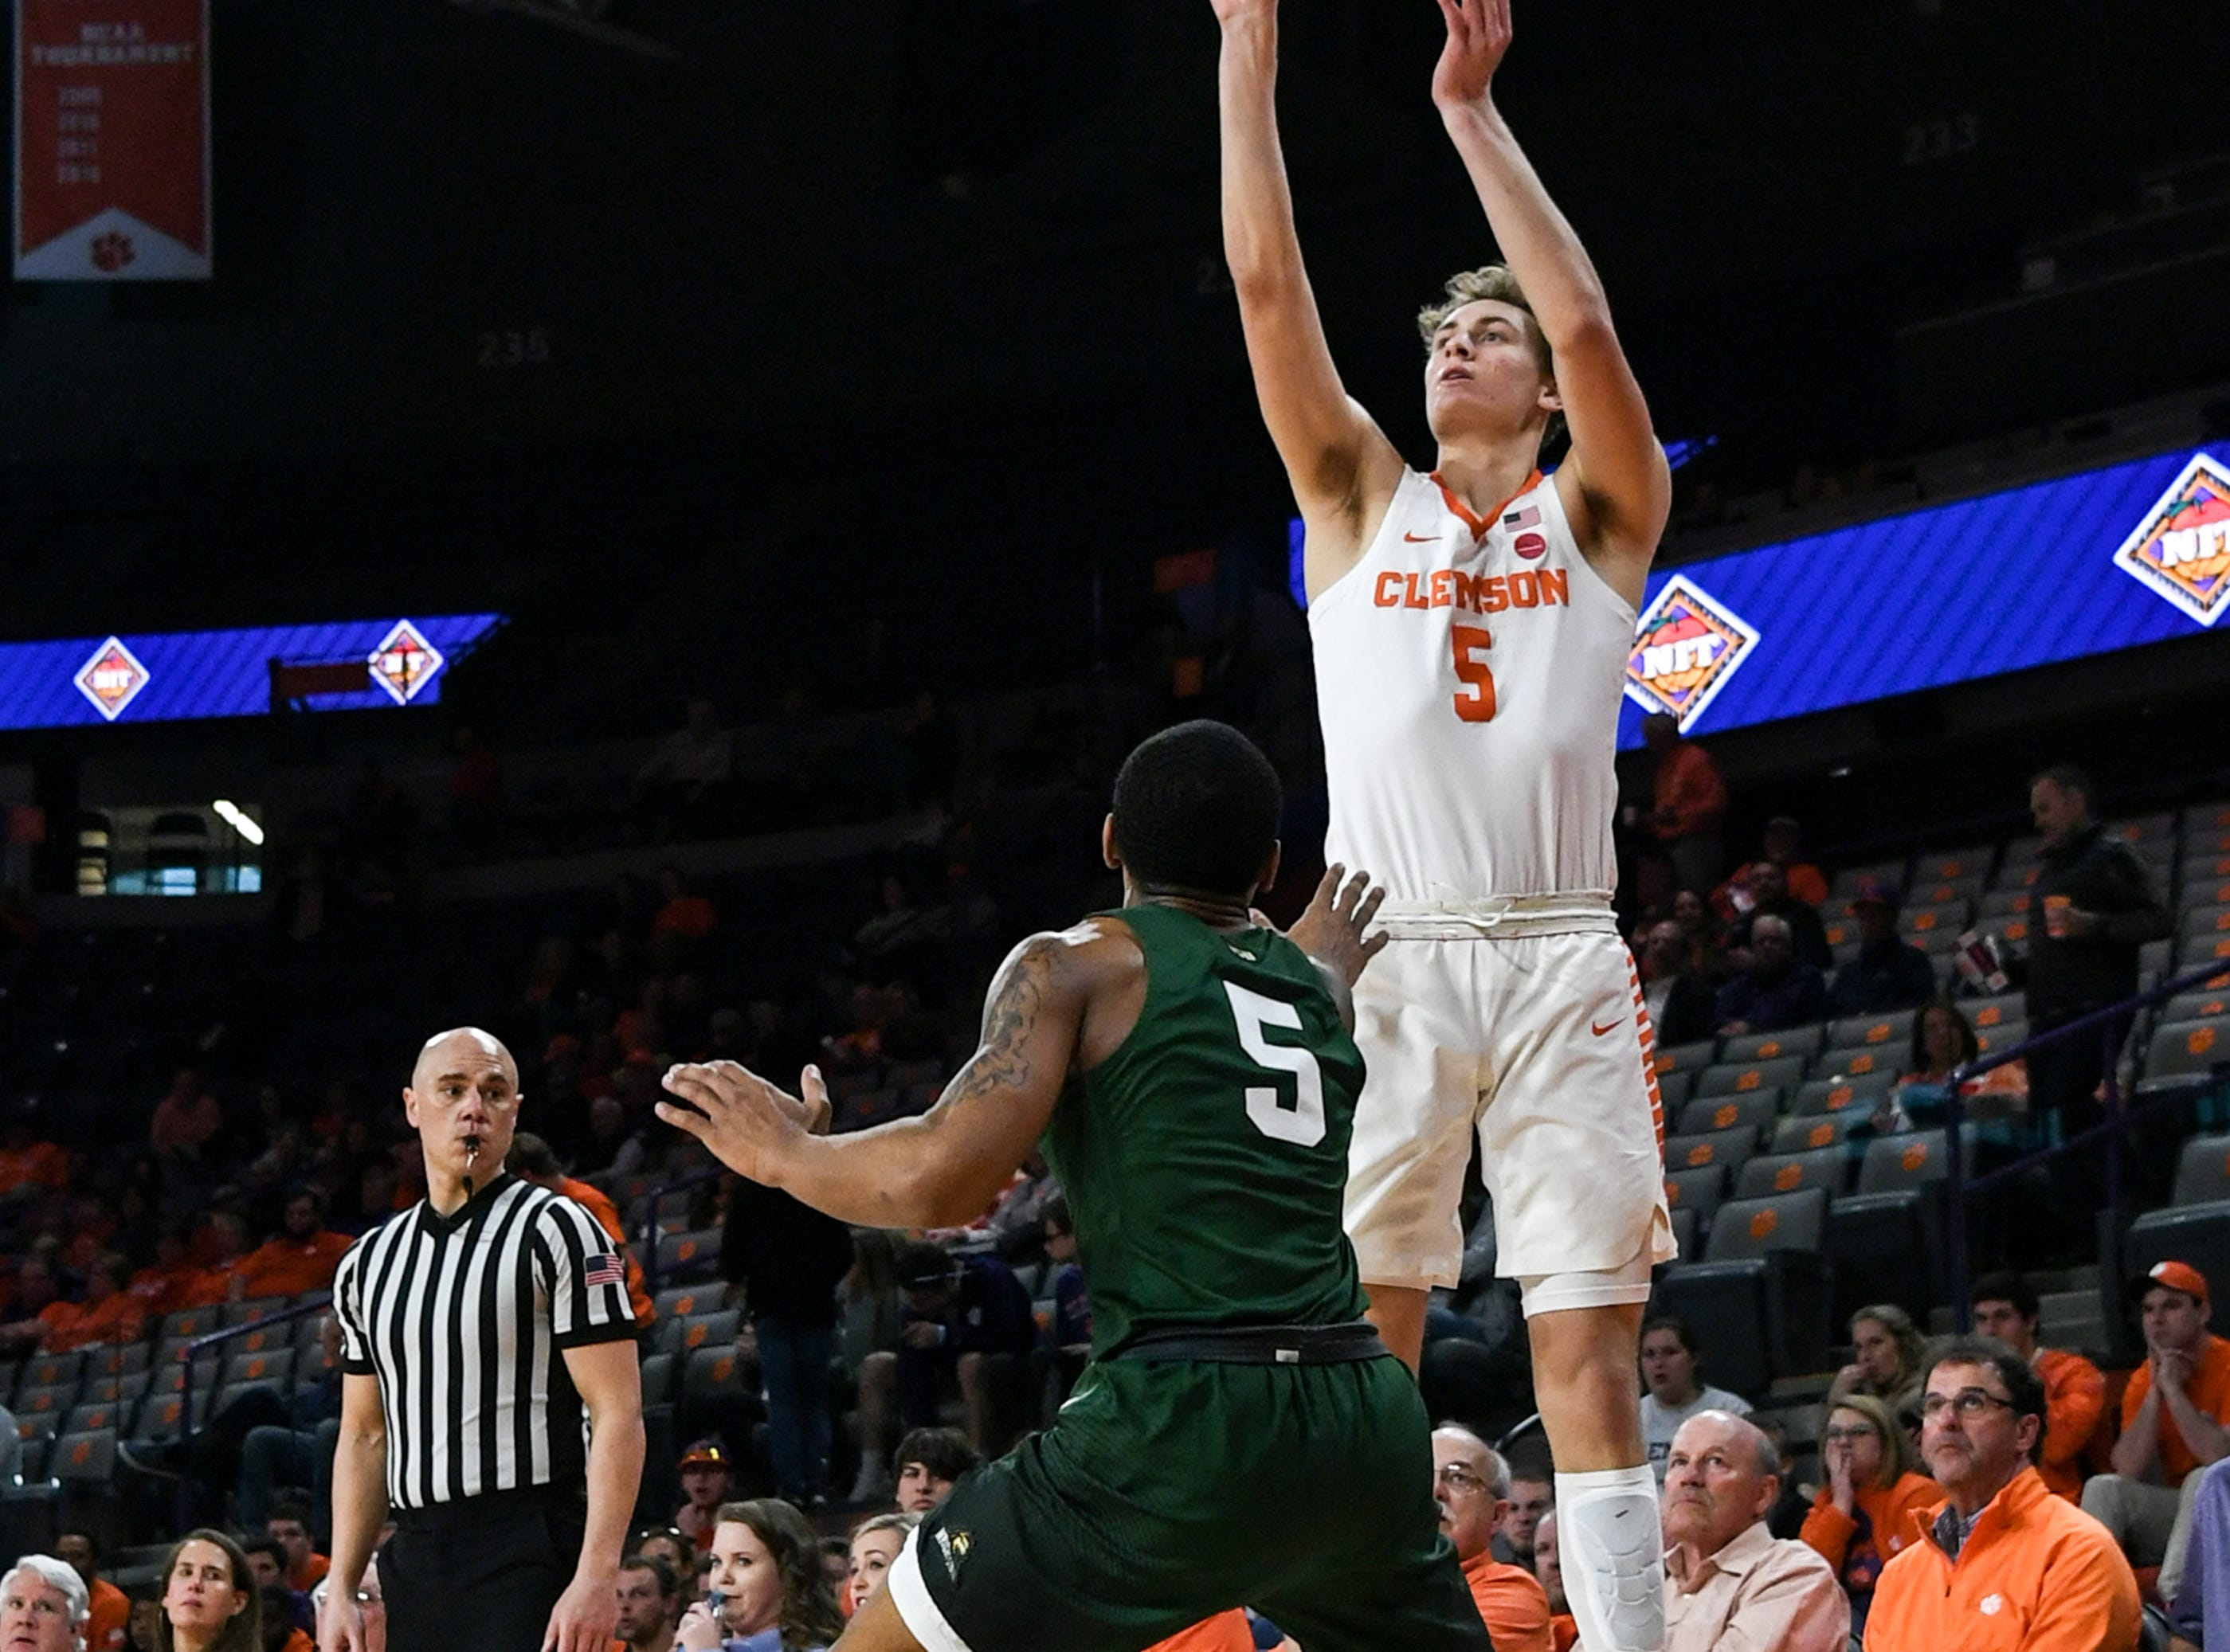 Clemson forward Hunter Tyson(5) shoots a three-pointer near Wright State guard Skyelar Potter(5) during the first half of the NIT at Littlejohn Coliseum in Clemson Tuesday, March 19, 2019.